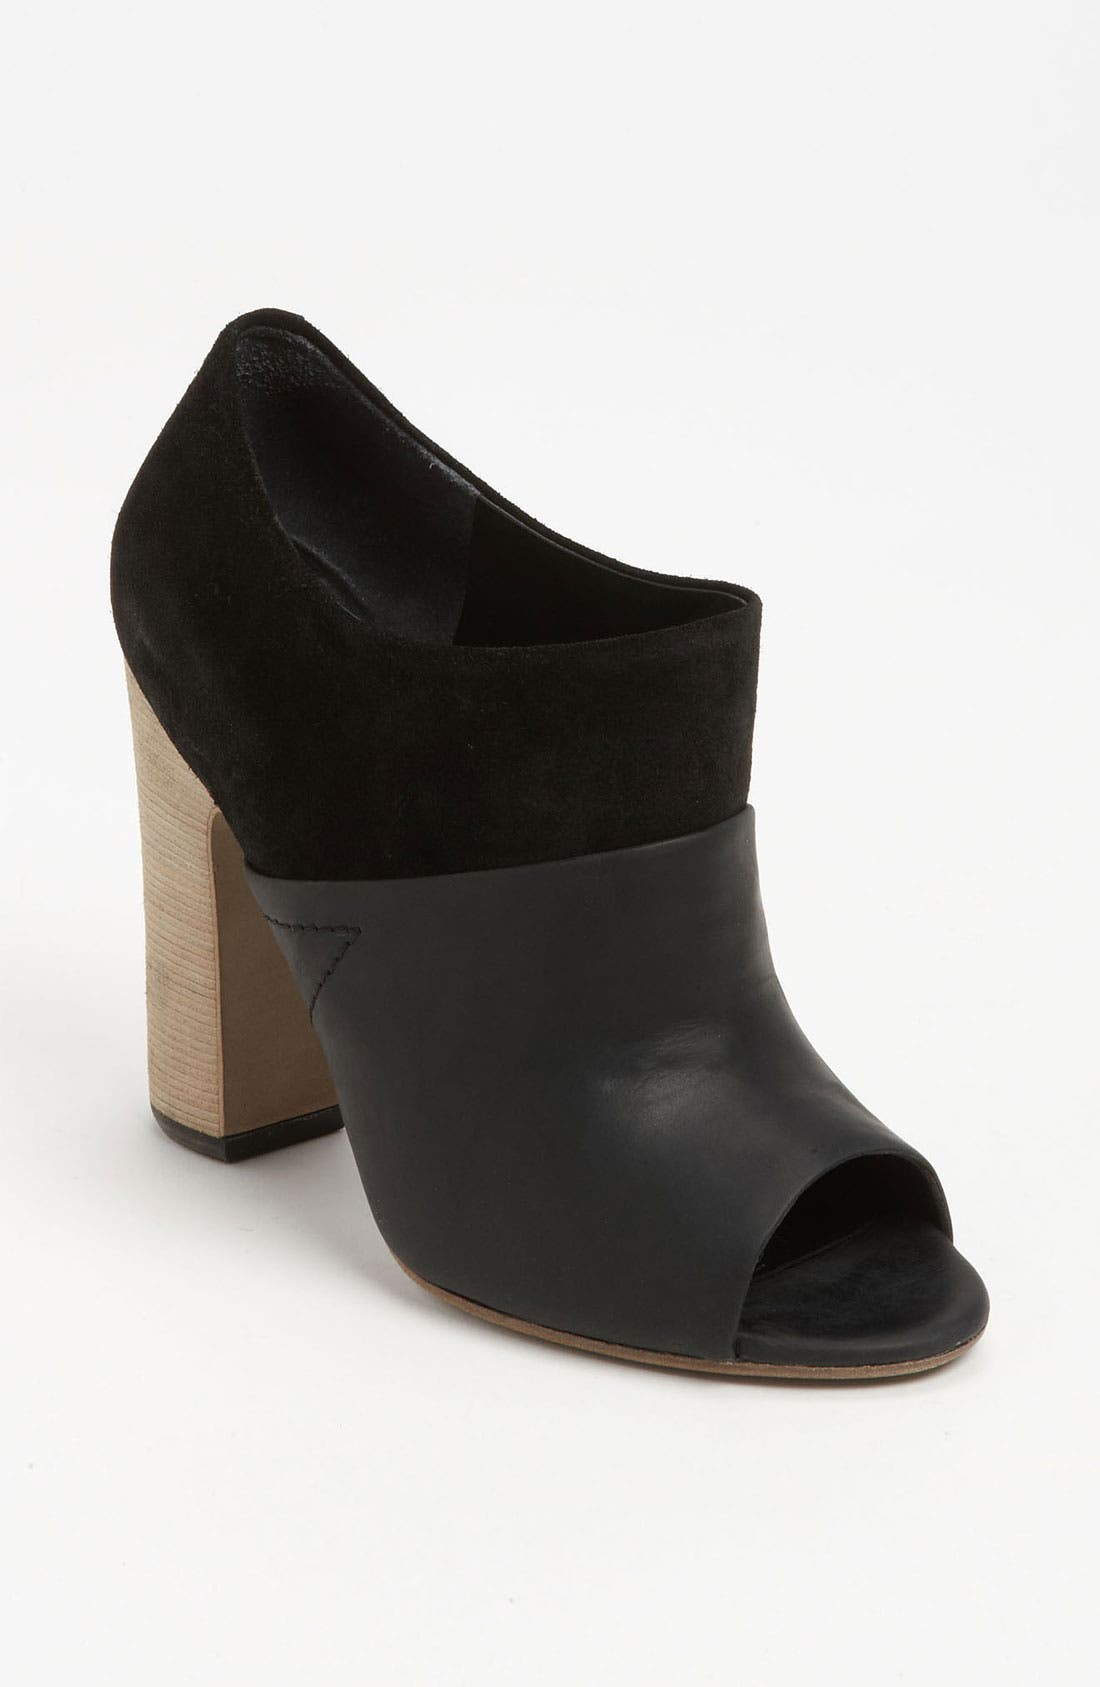 Main Image - Belle by Sigerson Morrison 'Beetle' Bootie